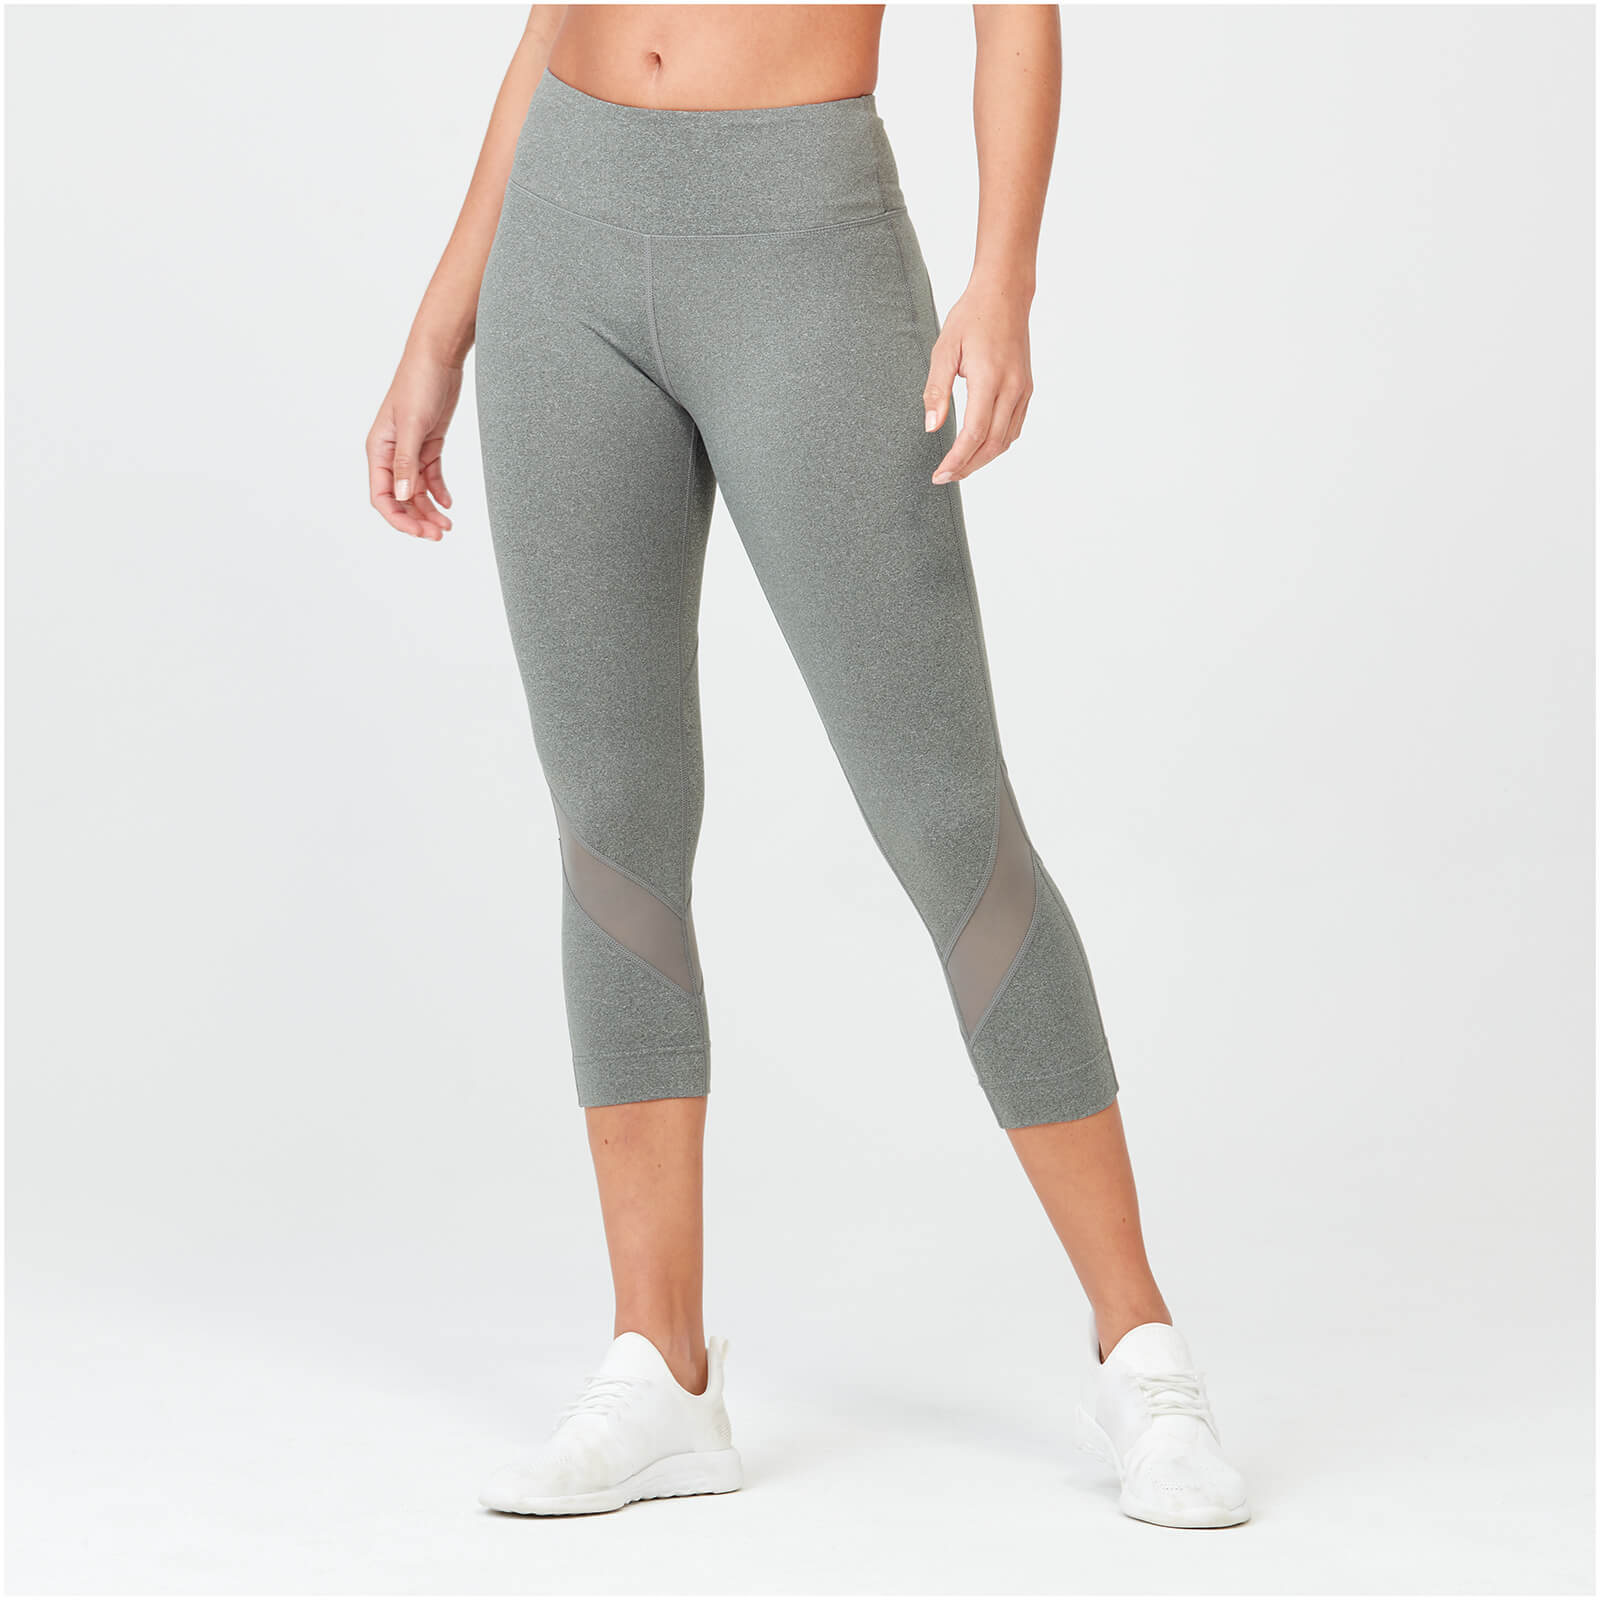 Myprotein Heartbeat Cropped Mesh Leggings - Grey - S